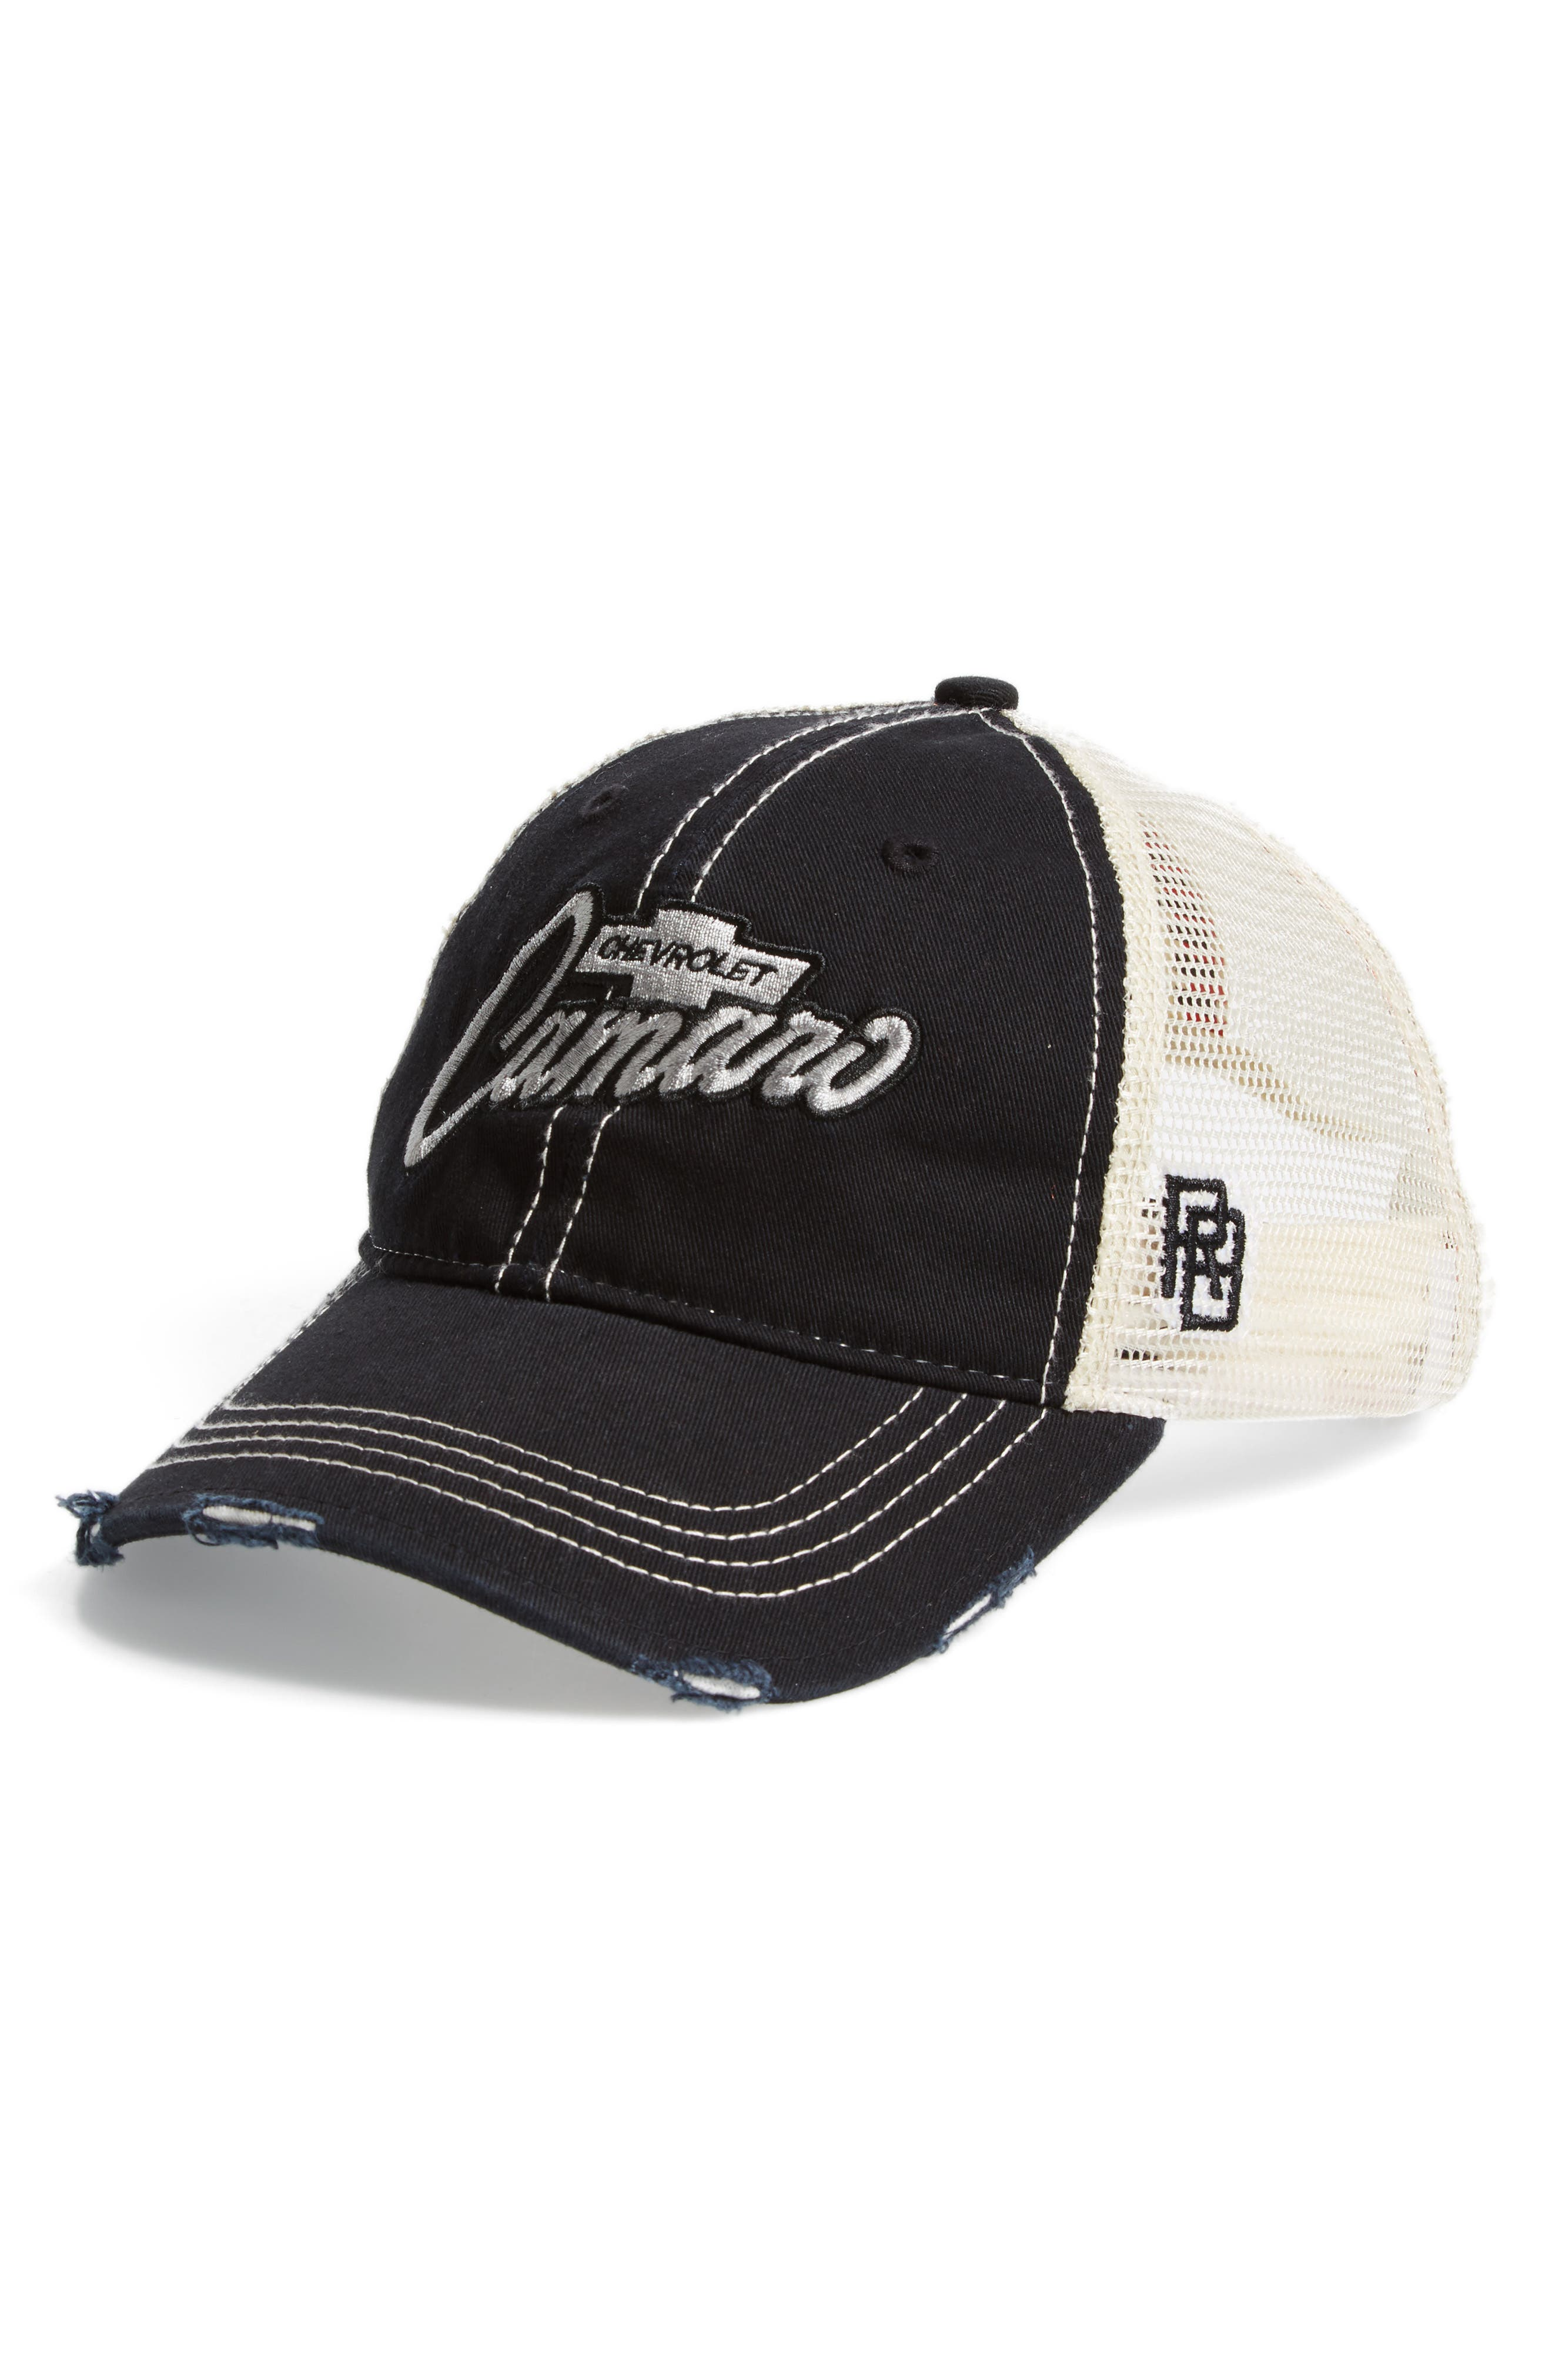 Original Retro Brand Camaro Trucker Hat,                             Main thumbnail 1, color,                             Black